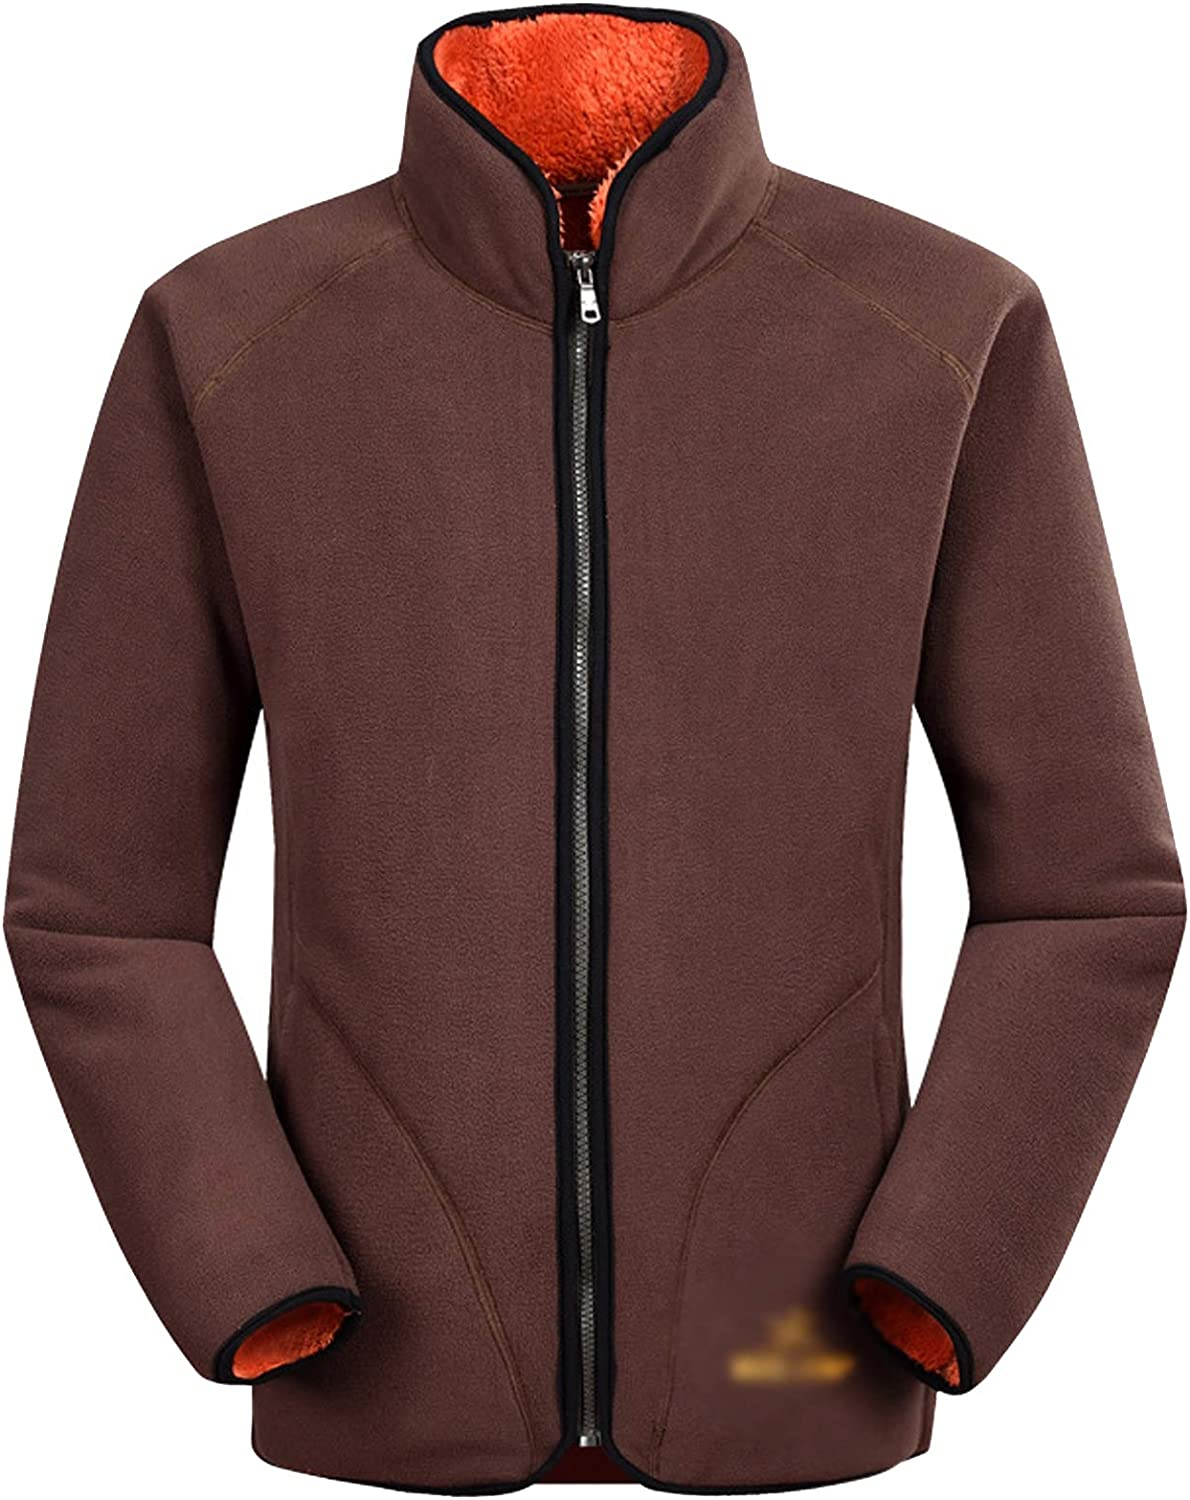 Flygo Mens Full Zip Polar Fleece Sherpa Jacket Lightweight Thermal Sport Coat